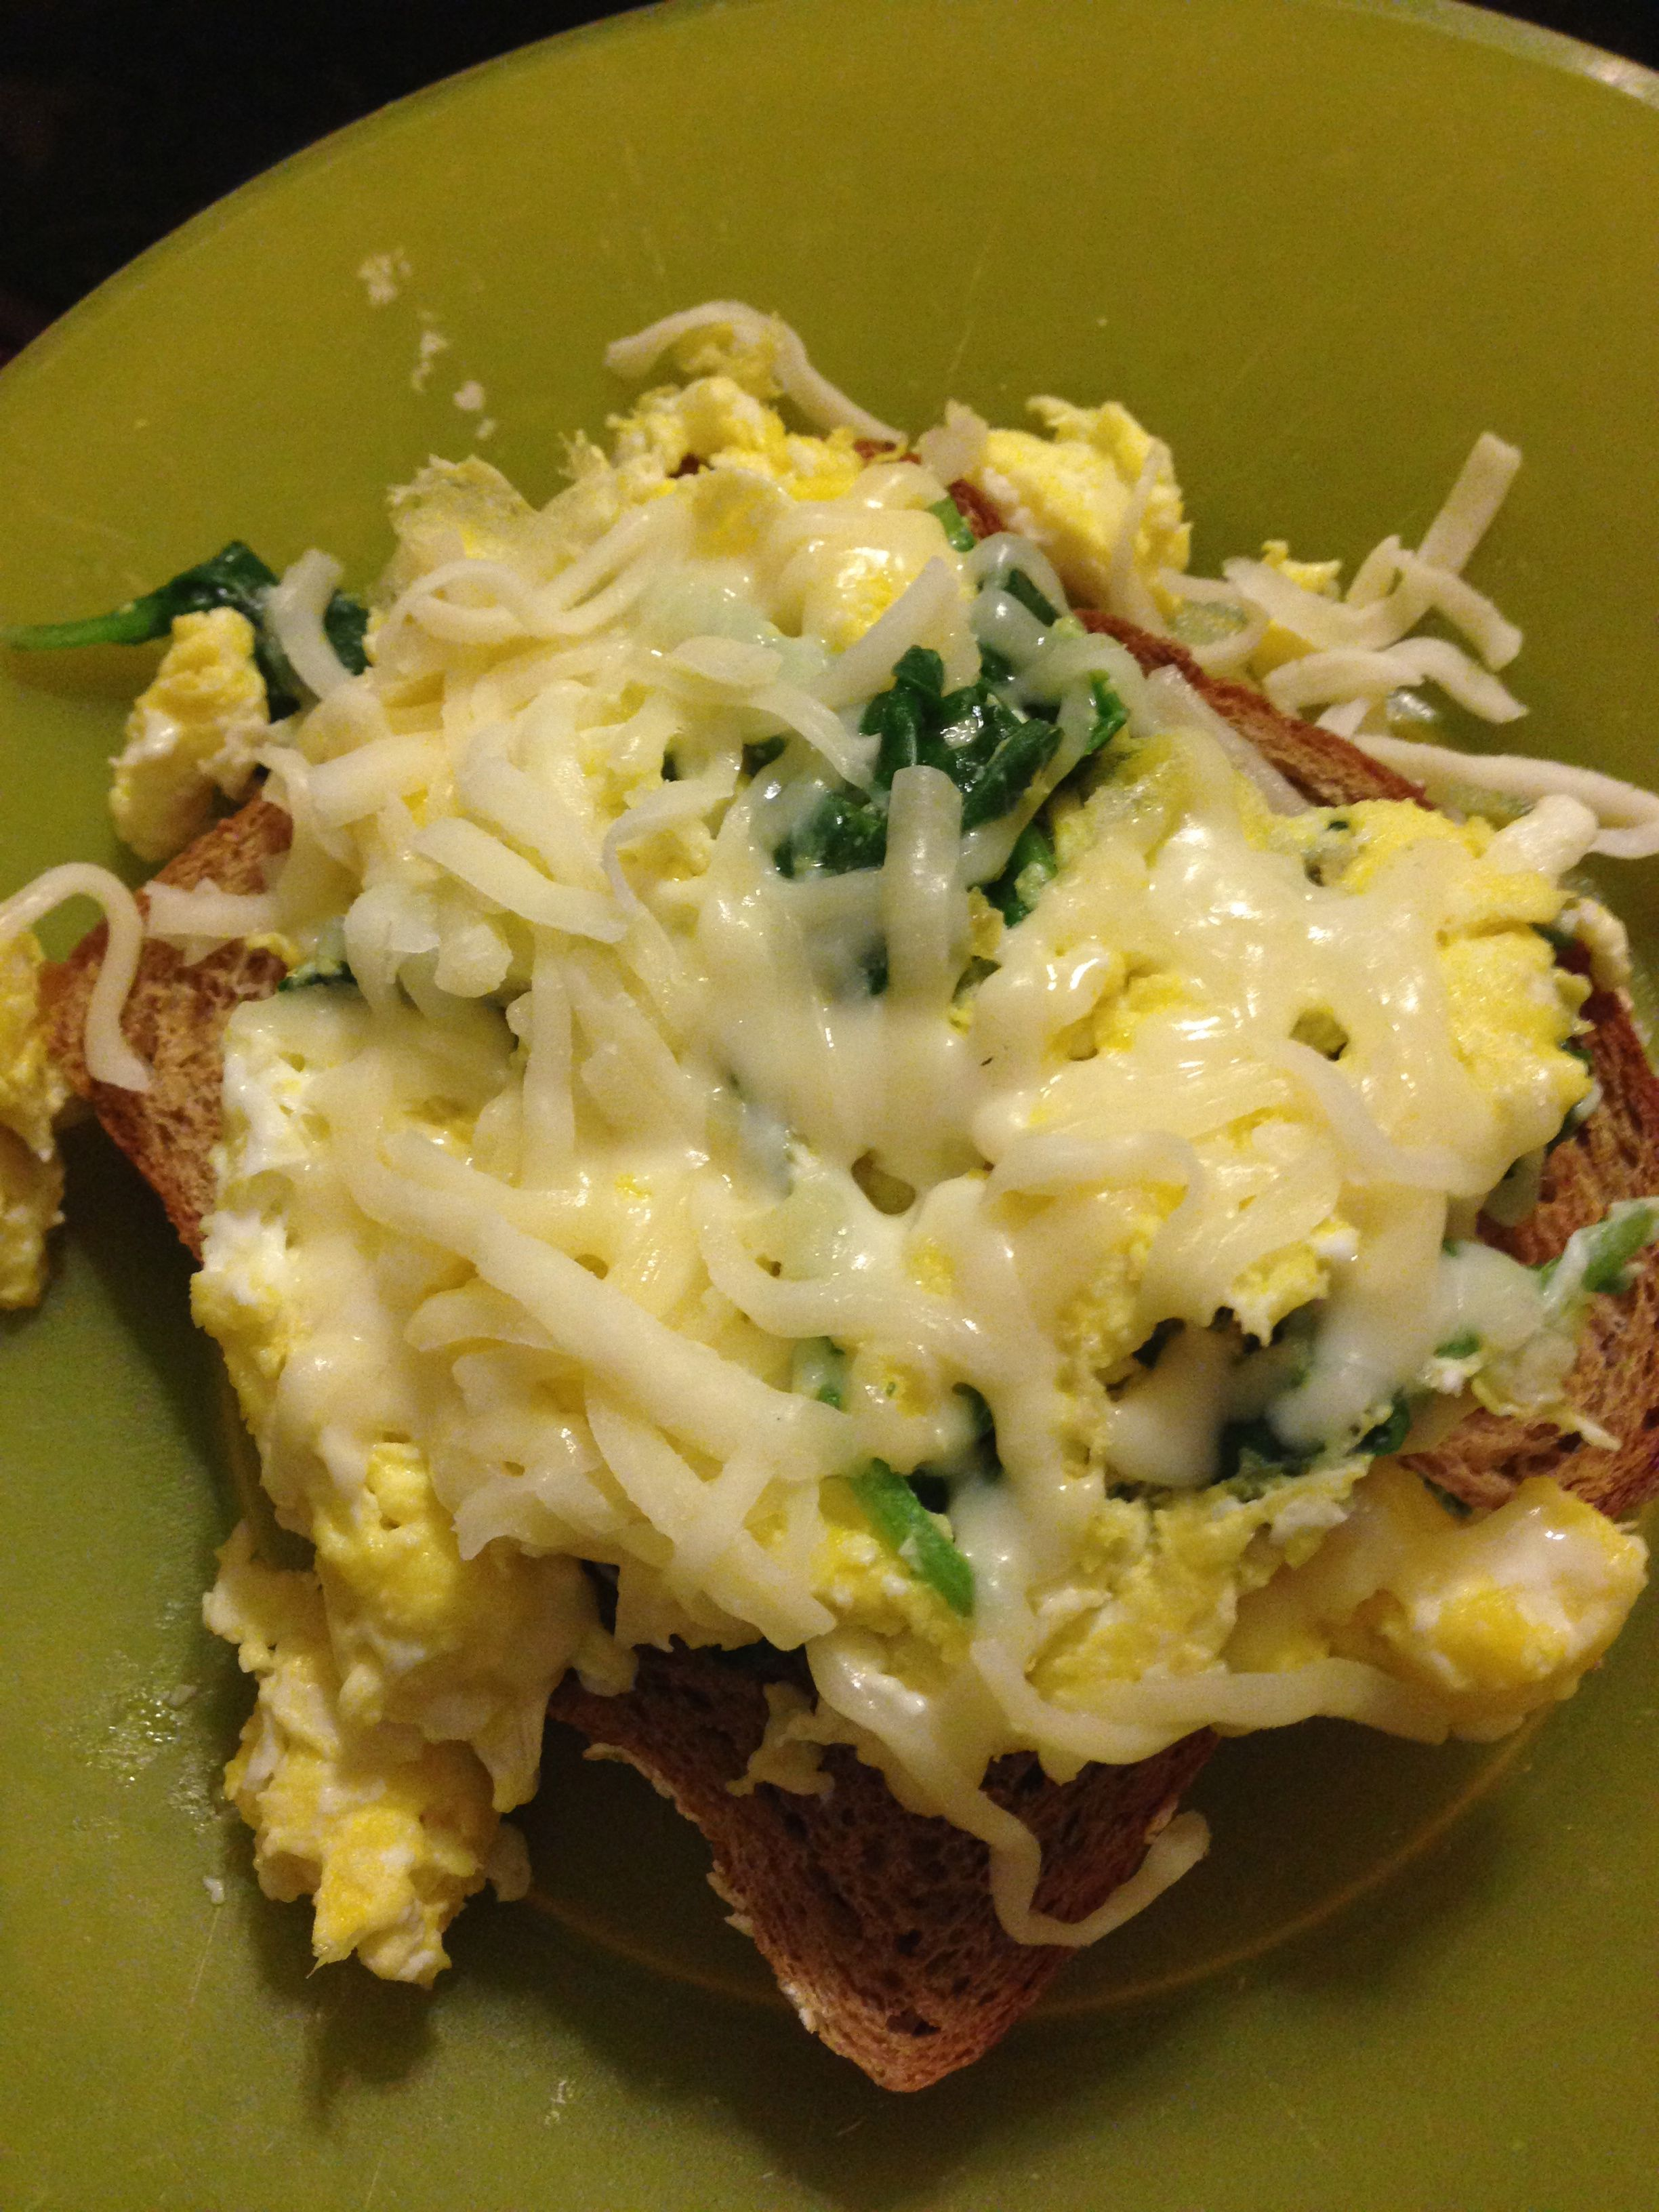 Breakfast 21 Day Fix Idea Whole Wheat Toast 1 Yellow 2 Scrambled Eggs Red Spinach Green Light Mozzarella Blue